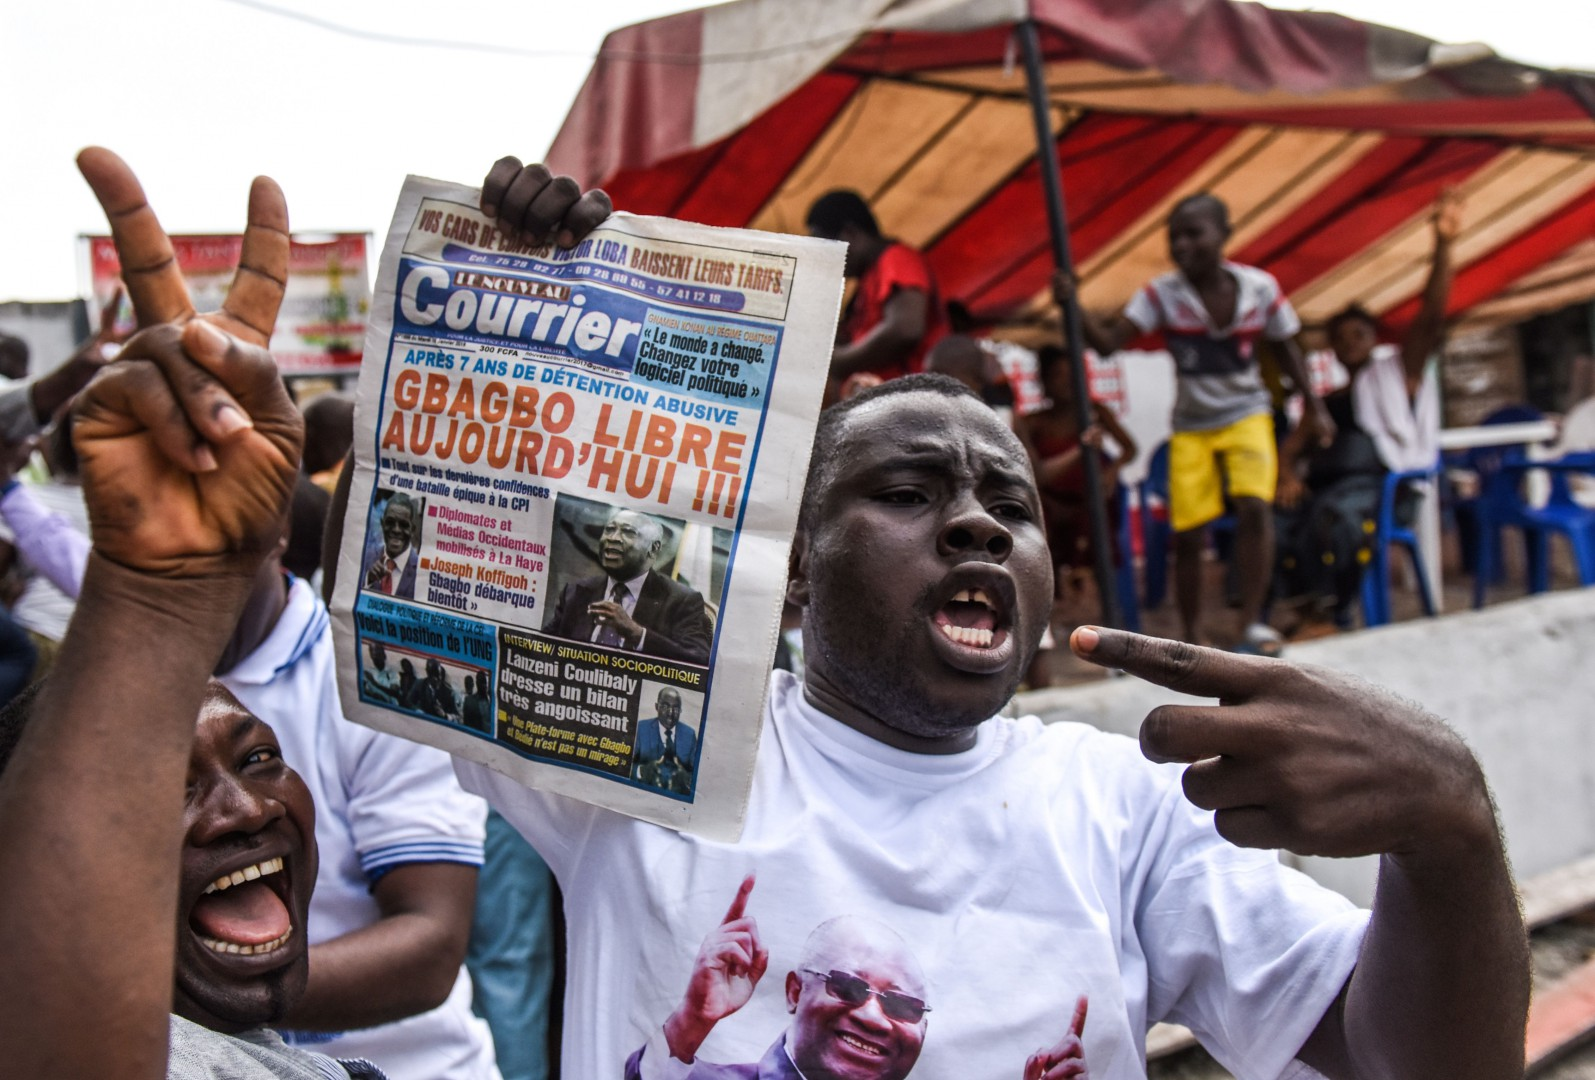 People celebrate on January 15, 2019 in Abidjan after the news that International Criminal Court acquitted former Ivory Coast president Laurent Gbagbo over a wave of post-electoral violence, in a stunning blow to the war crimes tribunal in The Hague. - Judges ordered the immediate release of the 73-year-old deposed strongman, the first head of state to stand trial at the troubled ICC. Gbagbo faced charges of crimes against humanity over the 2010-2011 bloodshed following a disputed vote the West African nation in which around 3,000 people were killed. (Photo by ISSOUF SANOGO / AFP)